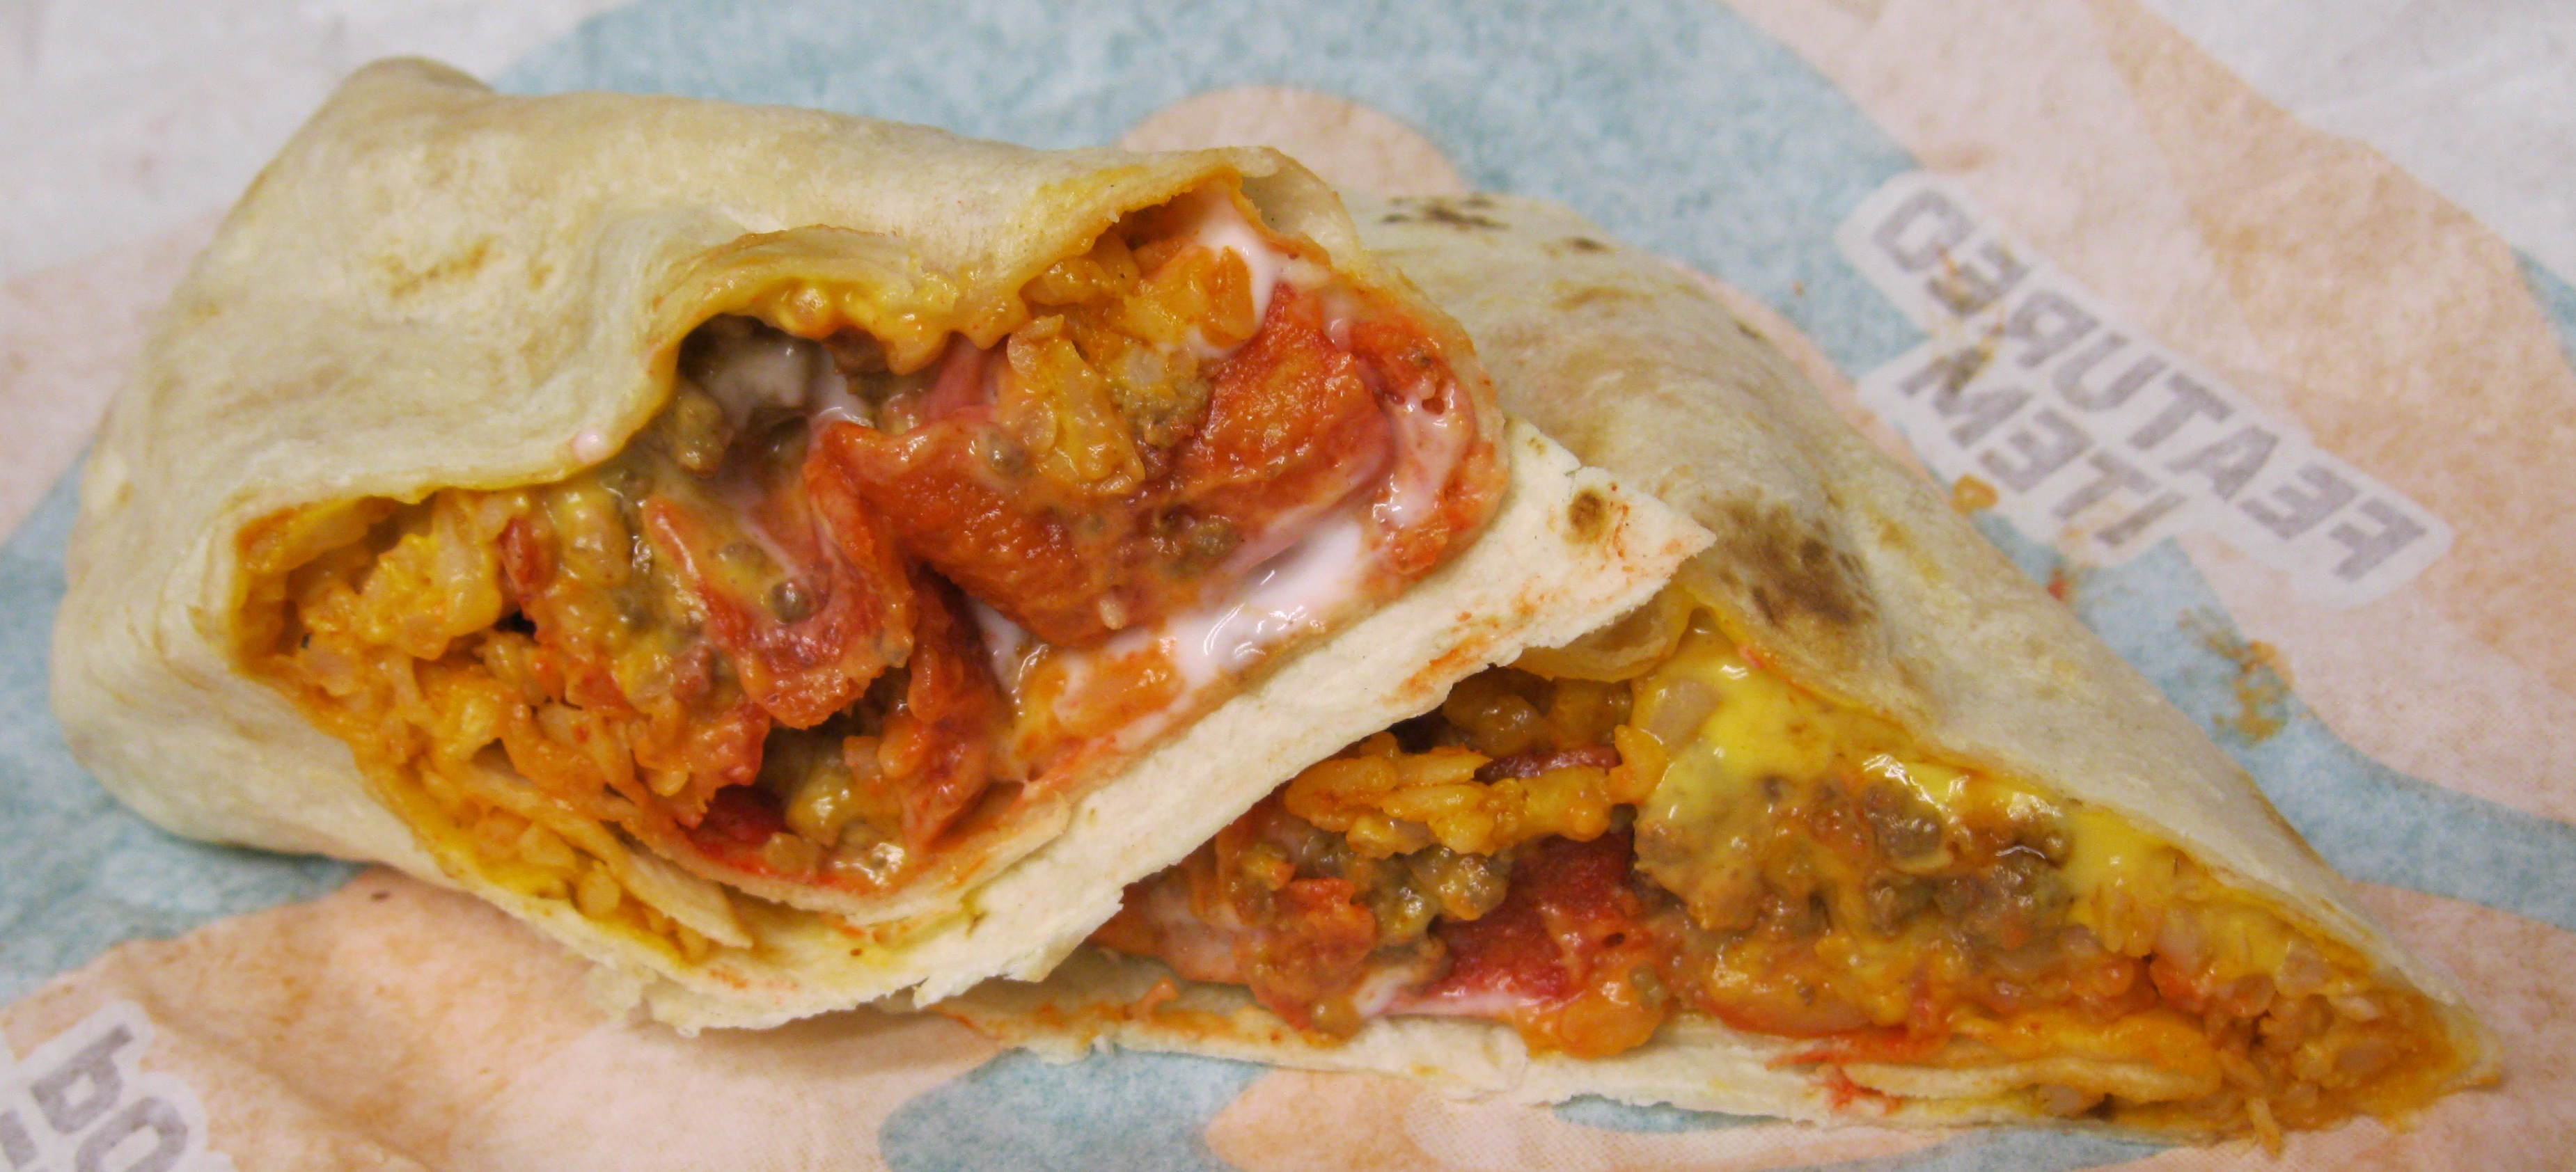 Food News  Taco Bell Meat Only 35  Meat  Taco Bell Patrons Neither    Taco Bell Beefy Crunch Burrito